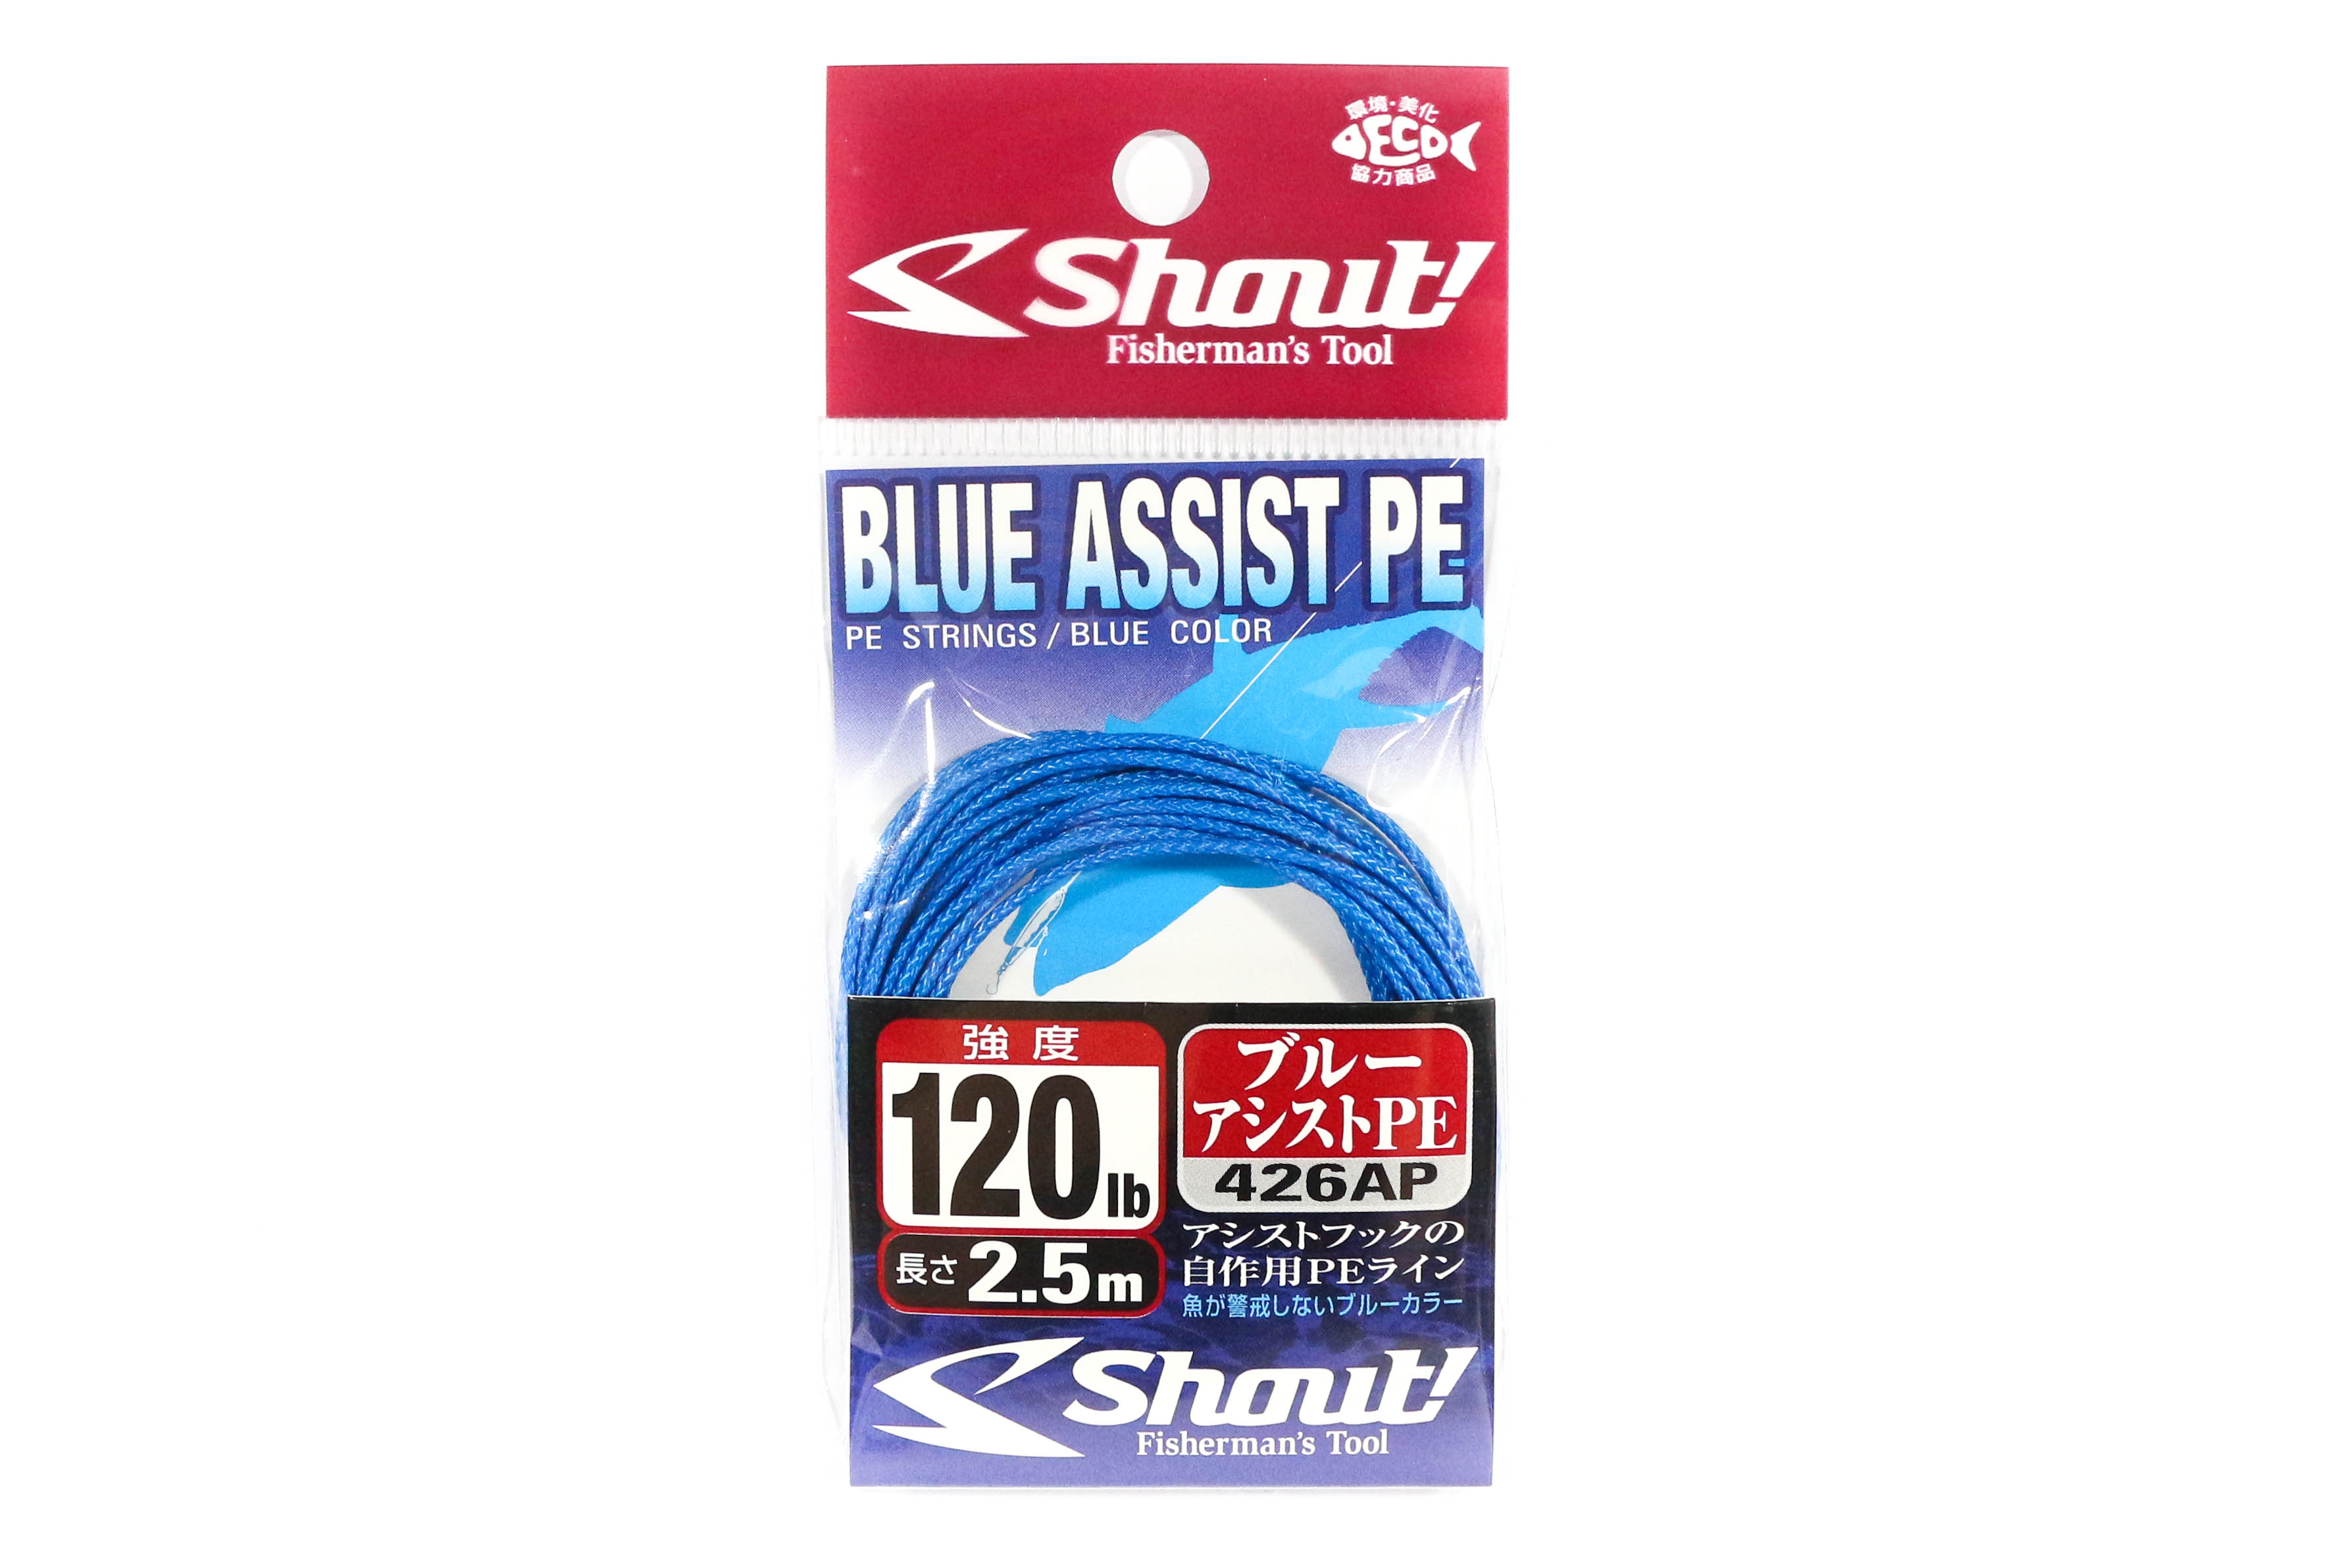 Shout 426-AP Blue Assist P.E Line Assist Rope Inner Core 2.5 meters 120LB (4664)